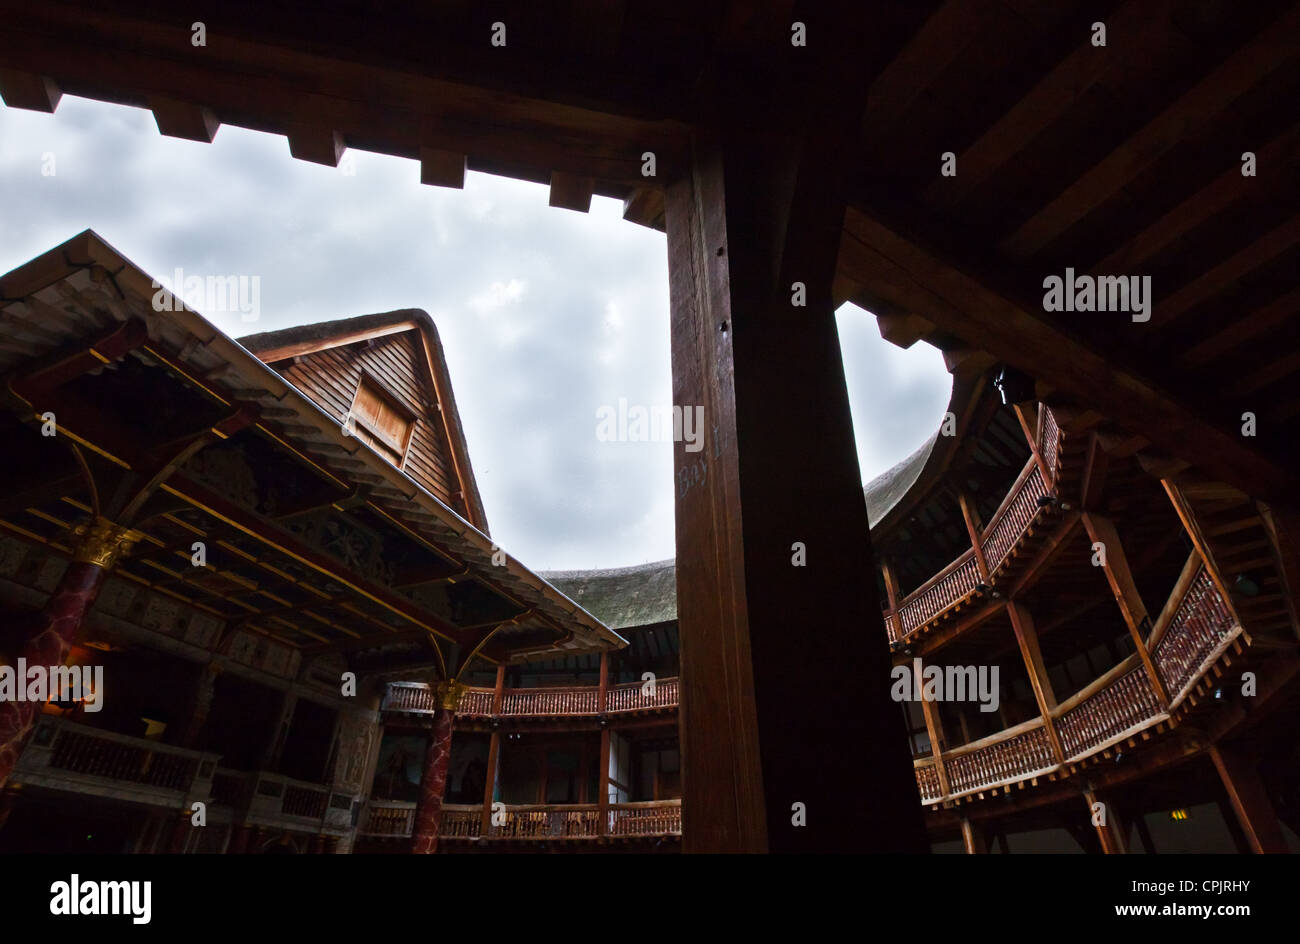 London, the Shakespeare's places, the Globe theatre rebuilded with the same materials and tecniques of the original - Stock Image